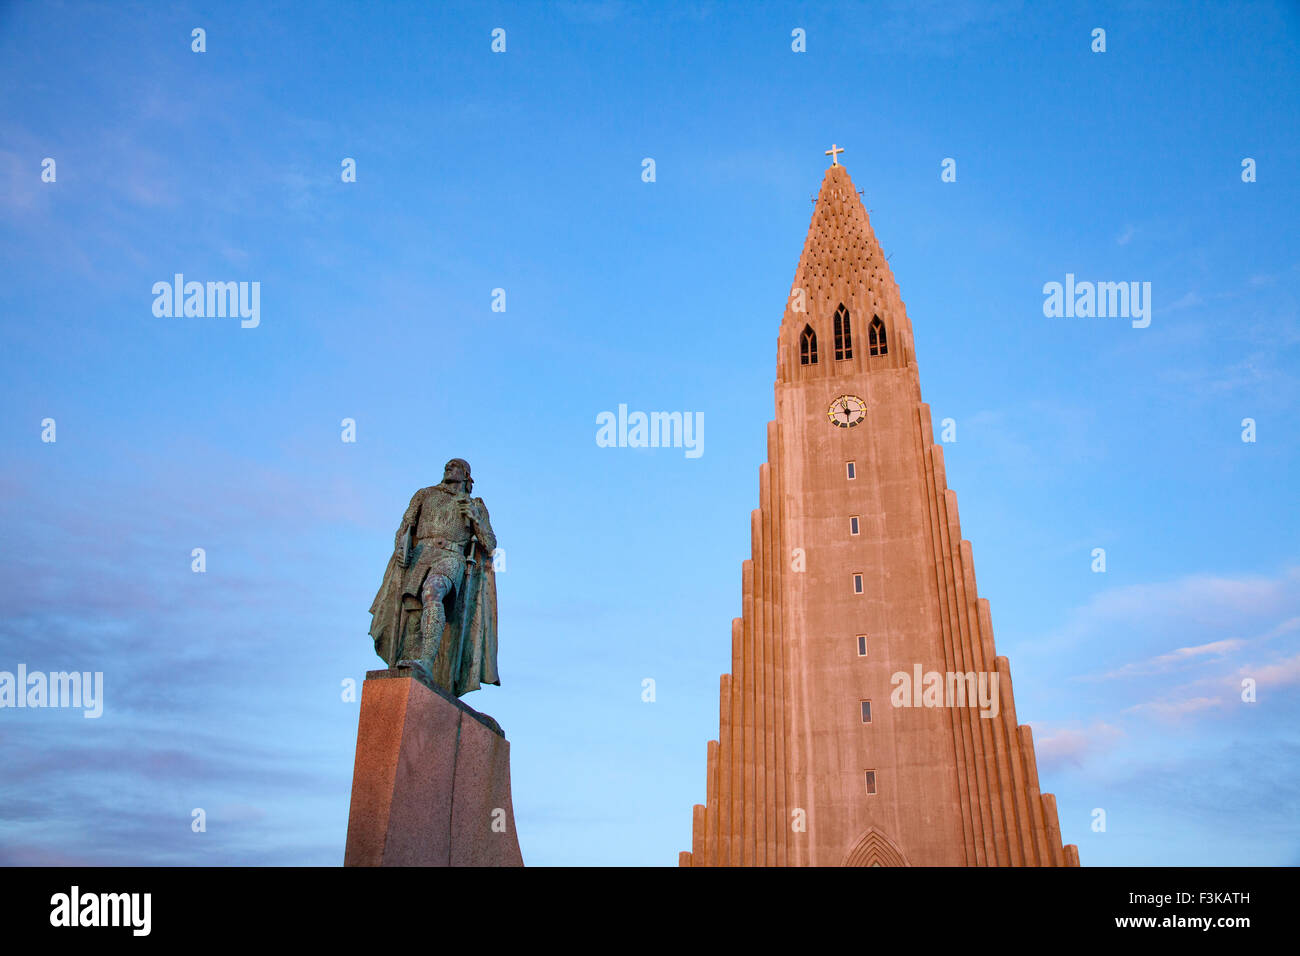 Evening light on Hallgrimskirkja church and statue of Leif Erikson, Reykjavik, Iceland. - Stock Image